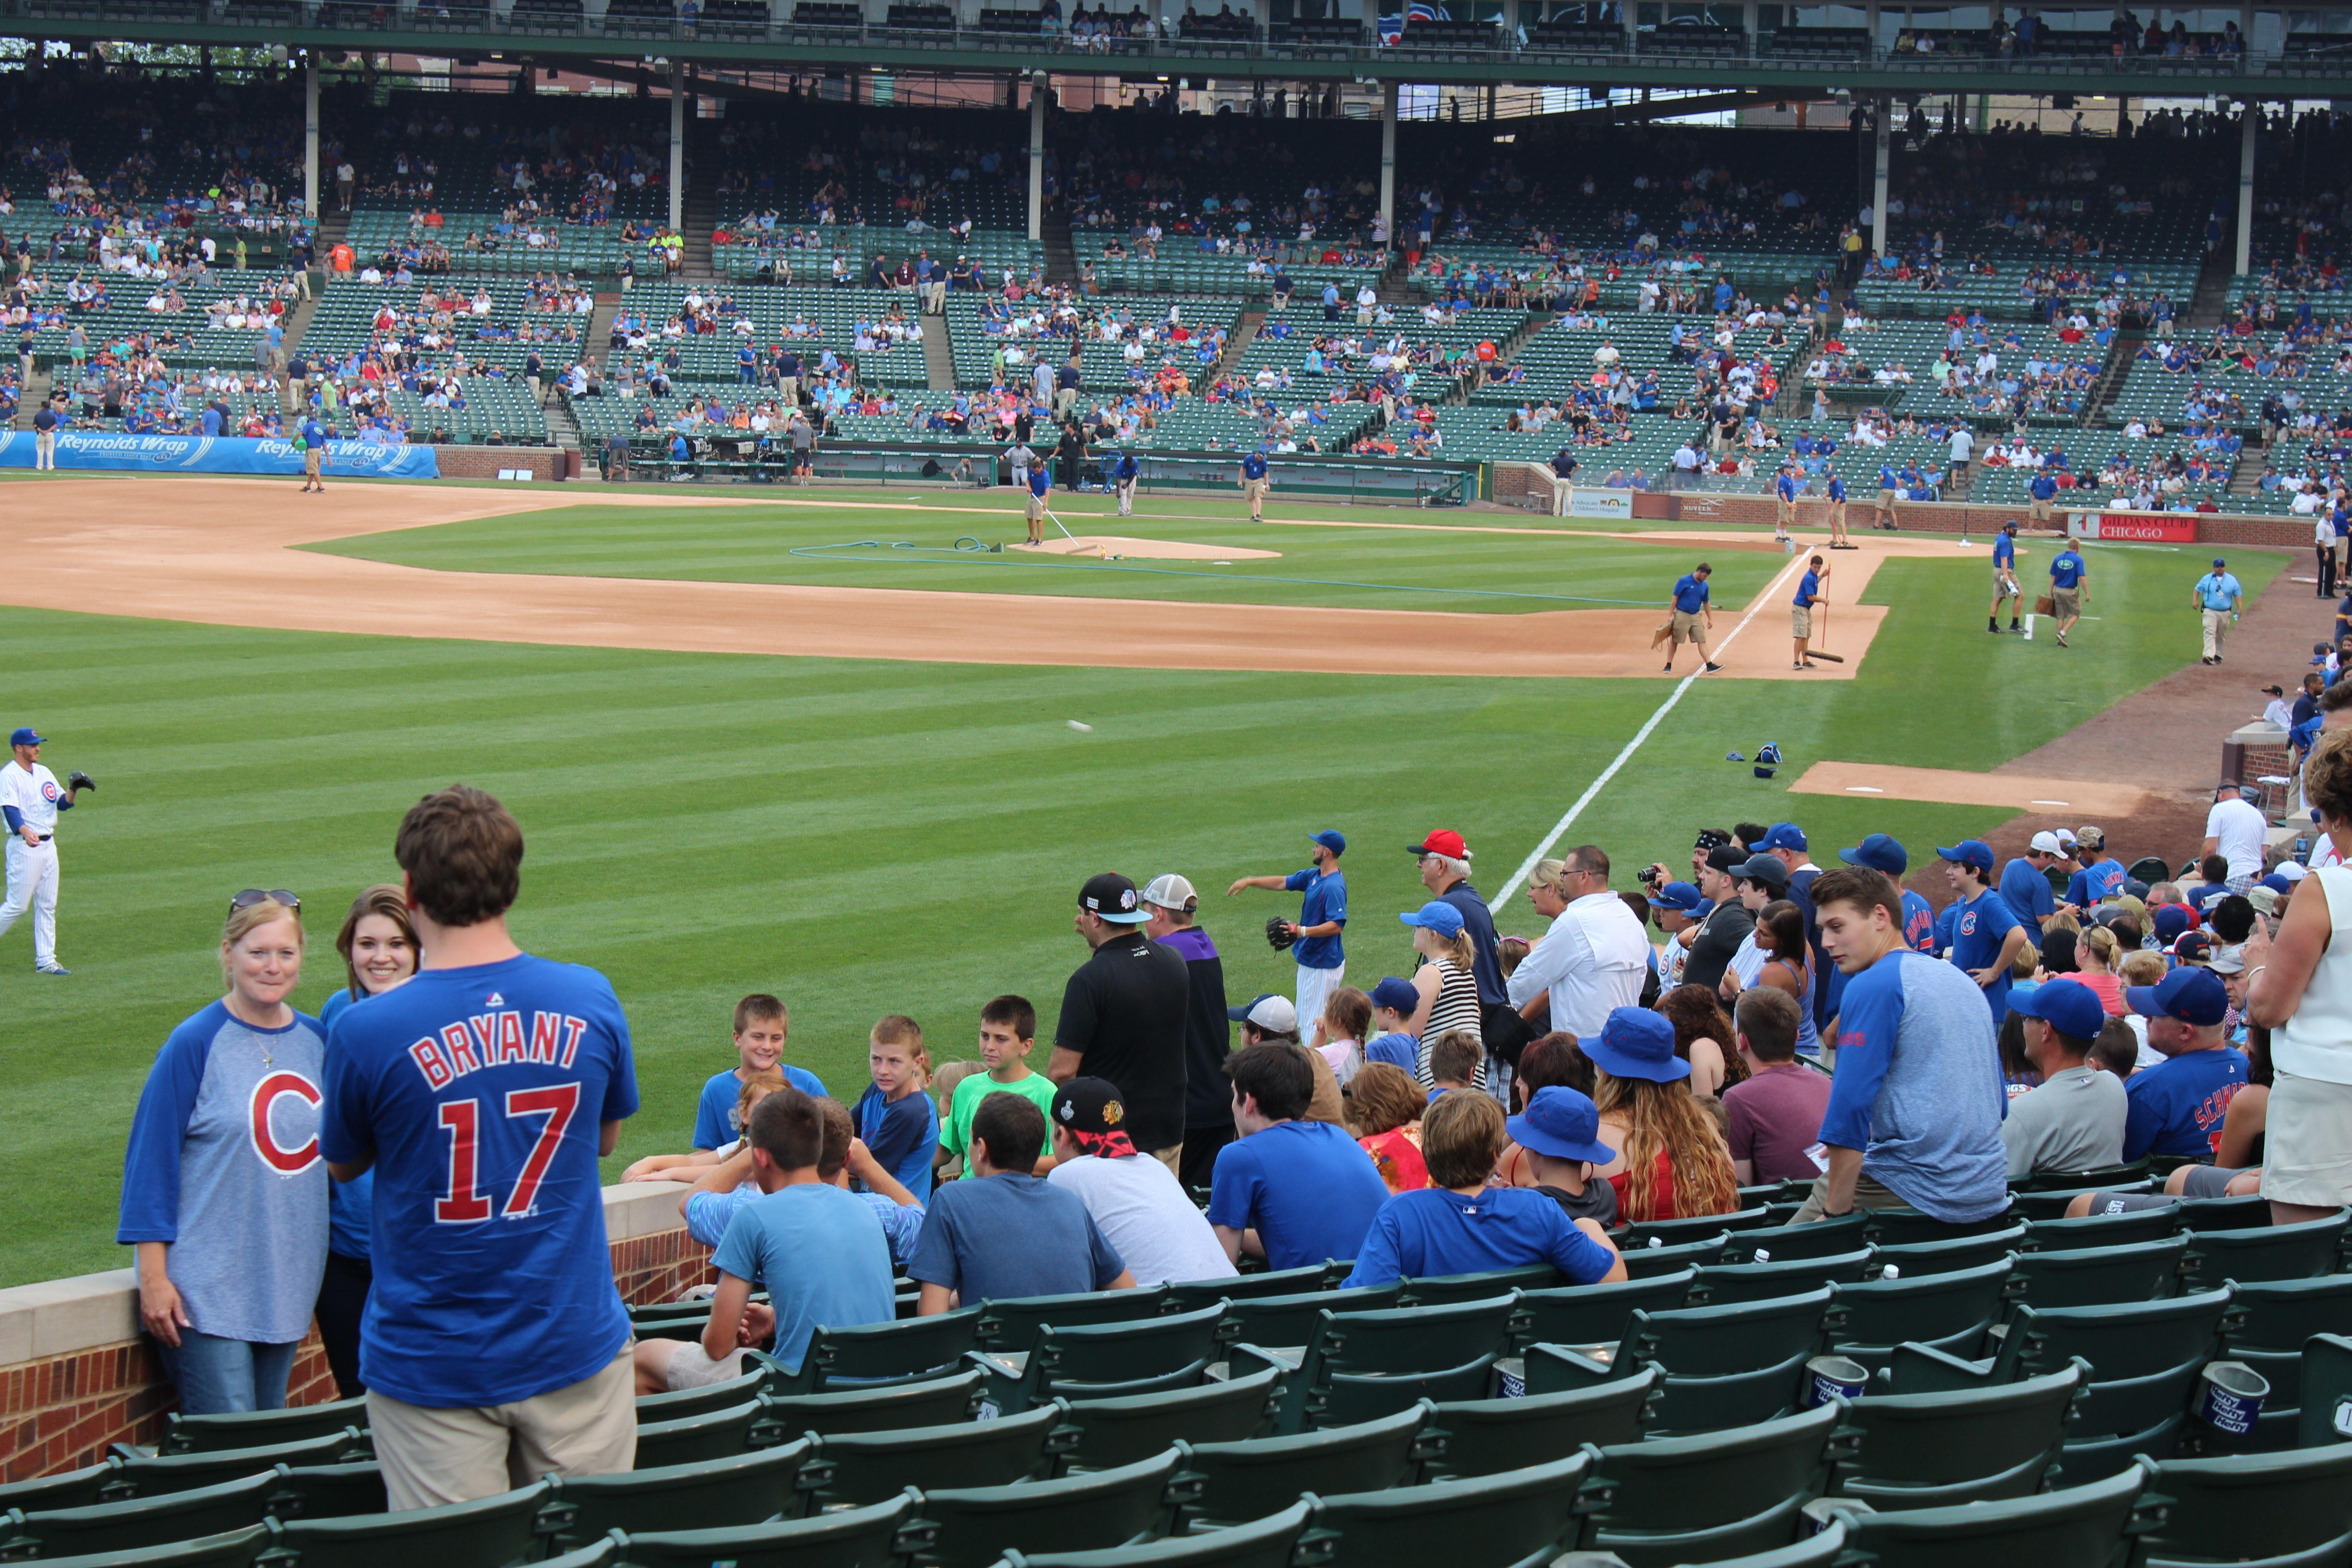 Wrigley Field Section 203 Row 1 Seat 7